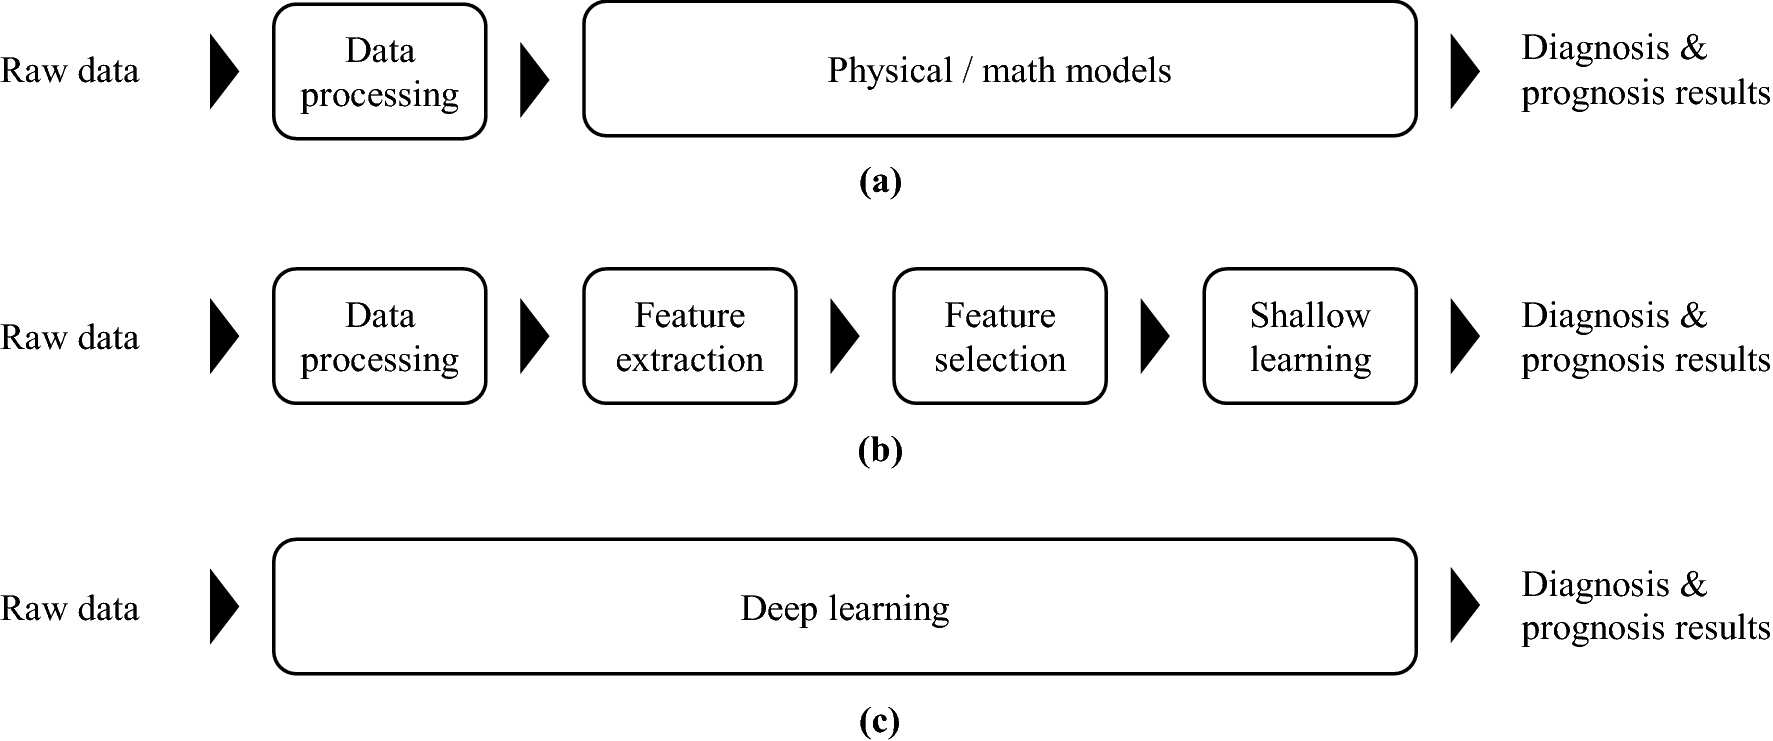 A comprehensive review of artificial intelligence-based